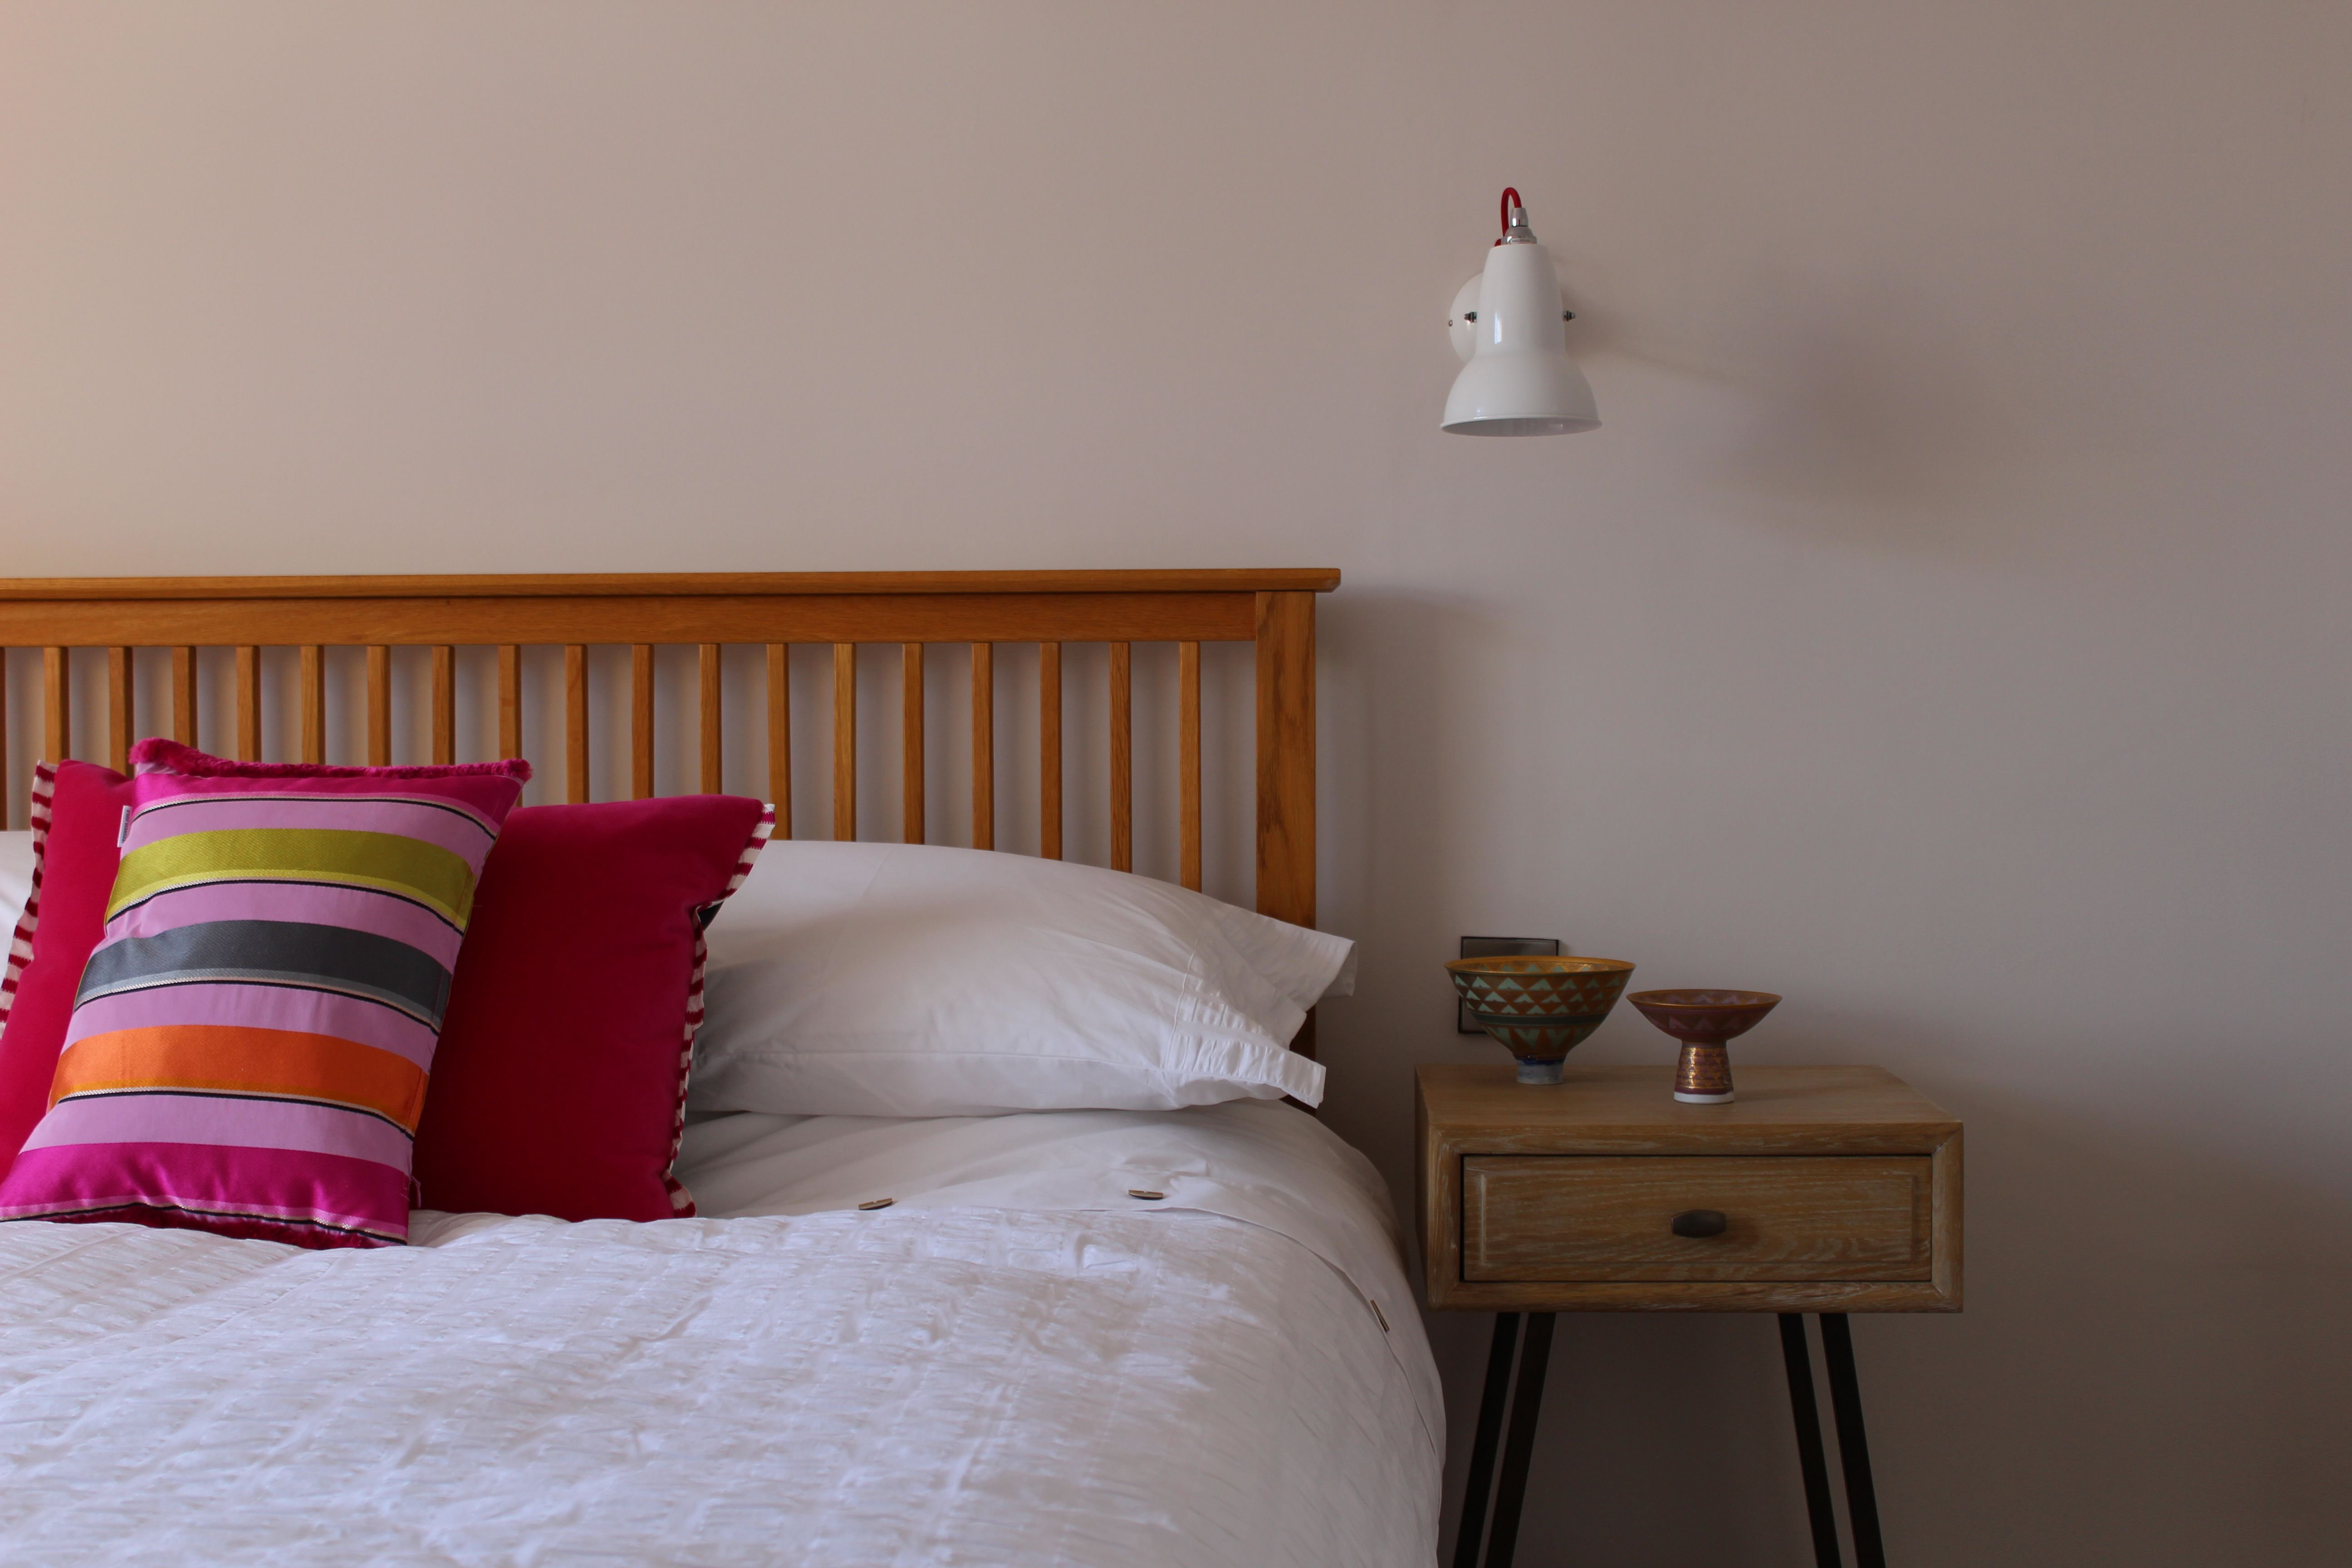 Anglepoise Wall Light Bedroom